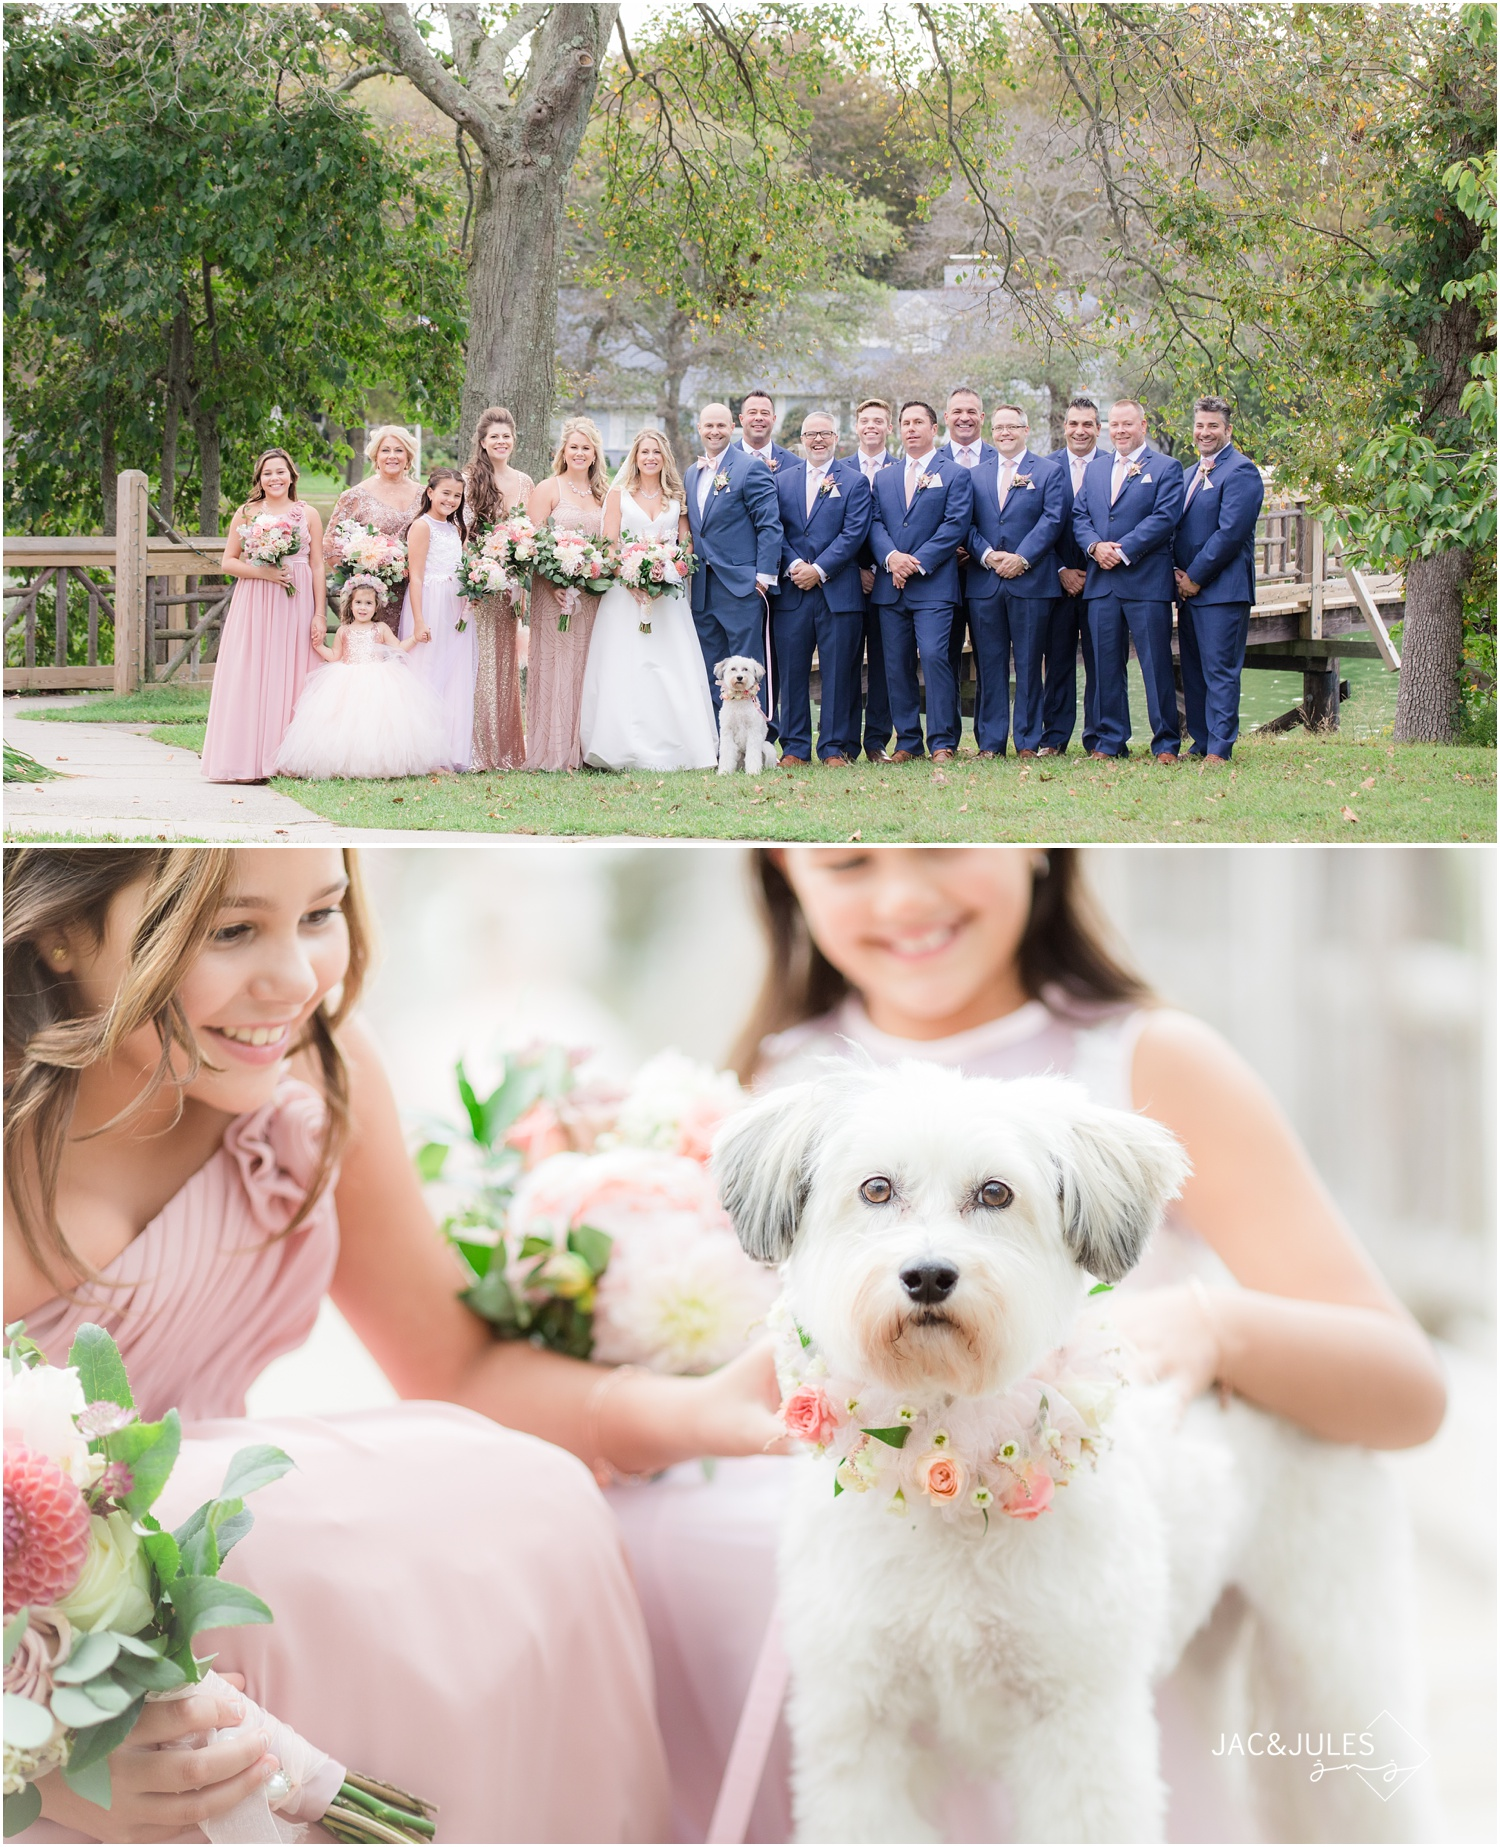 Bridal Party photos with puppy photos by the bridge in Devine Park in Spring Lake, NJ.